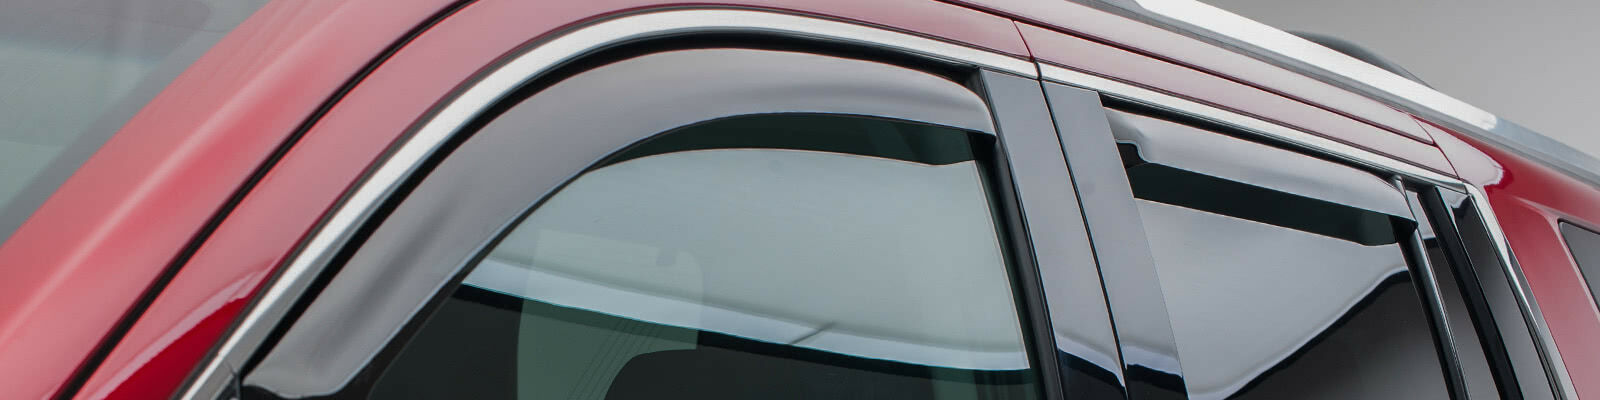 chevy tahoe inchannel window visors dark smoke